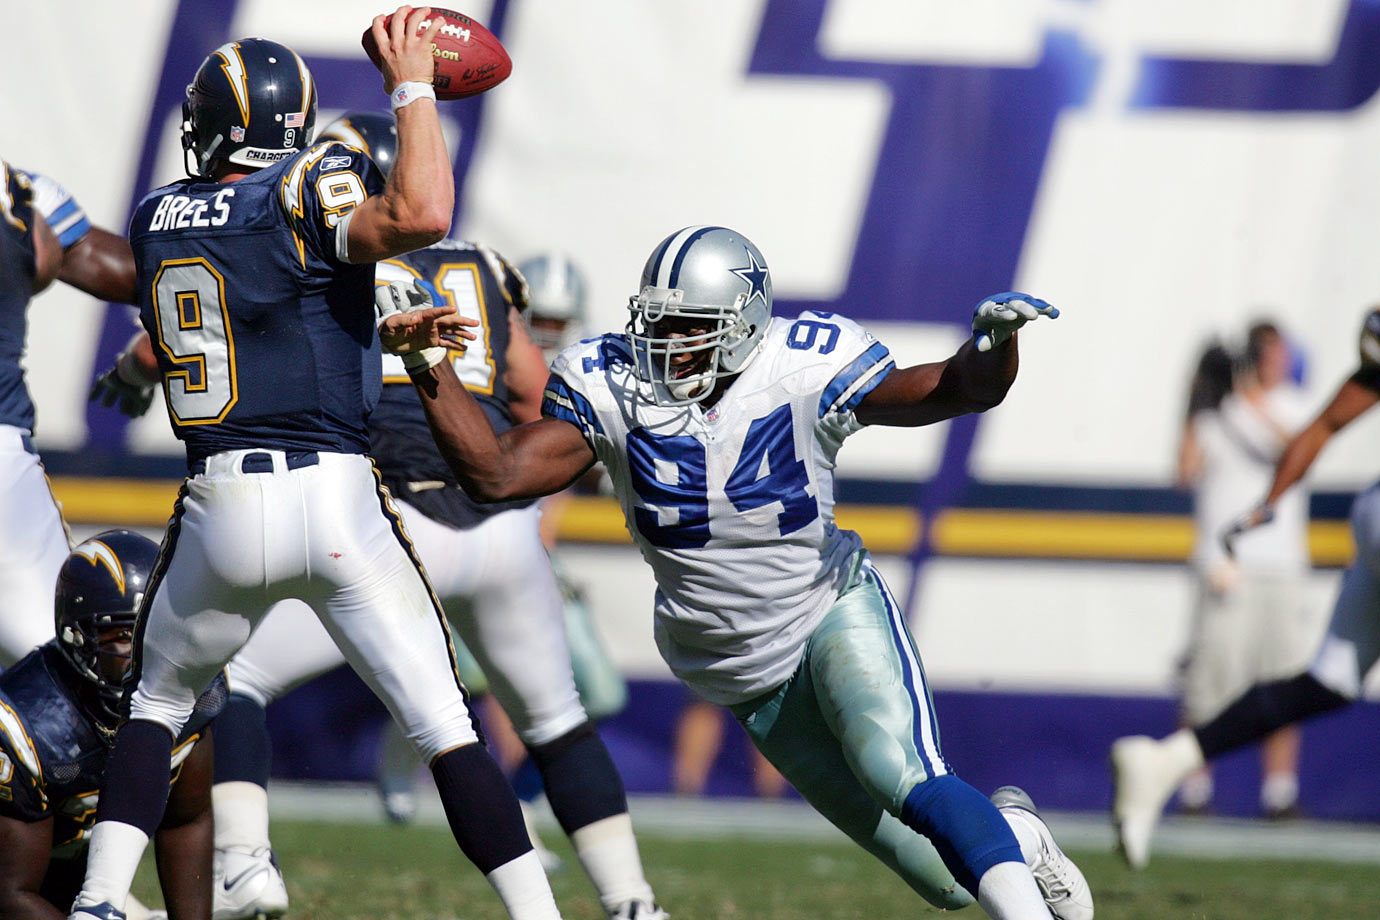 Charles Haley almost made the cut here, but we went with another former Cowboys pass rusher. Ware amassed 117 sacks over his eight seasons in Dallas, leading the league in 2008 and '10. He fell off a bit when schematic changes limited his role, but he picked up 10 sacks with the Broncos in '14 and appears ready to maintain his Hall of Fame trajectory.